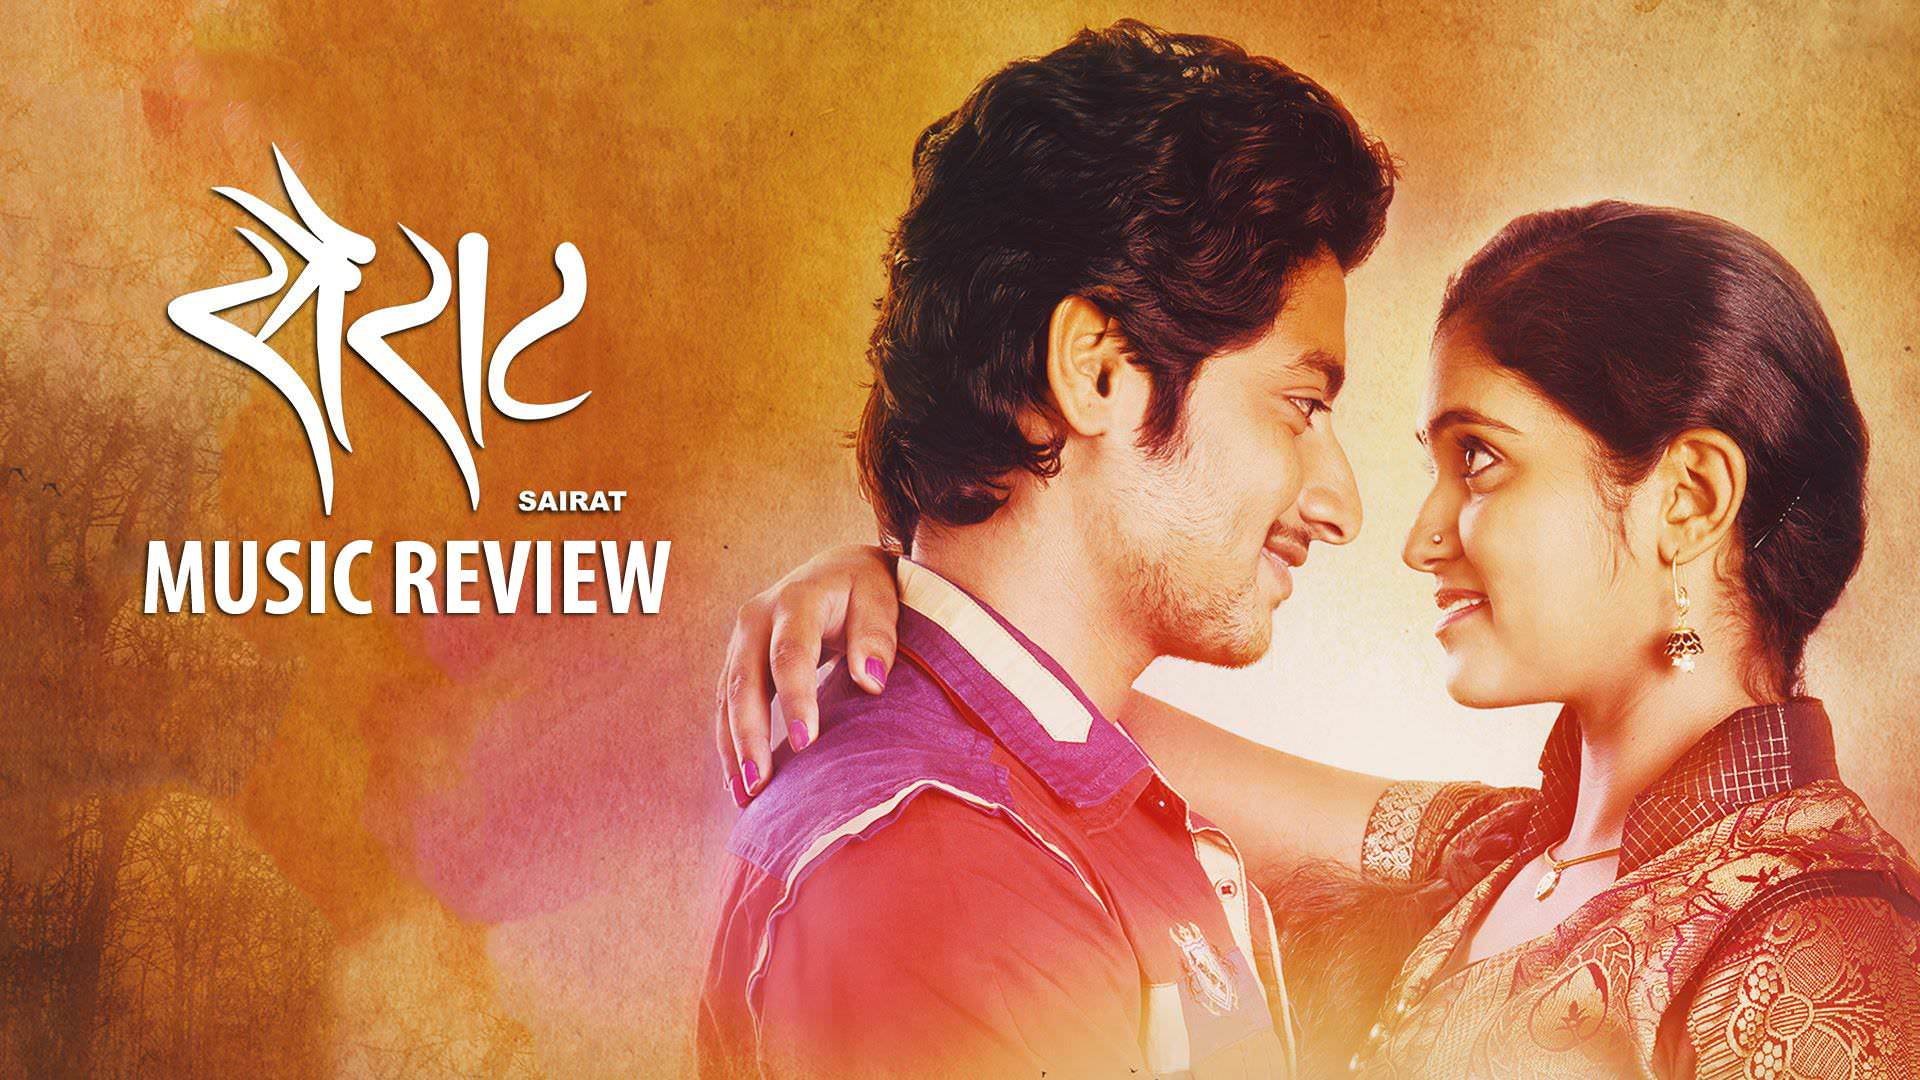 sairat marathi movie all songs music review